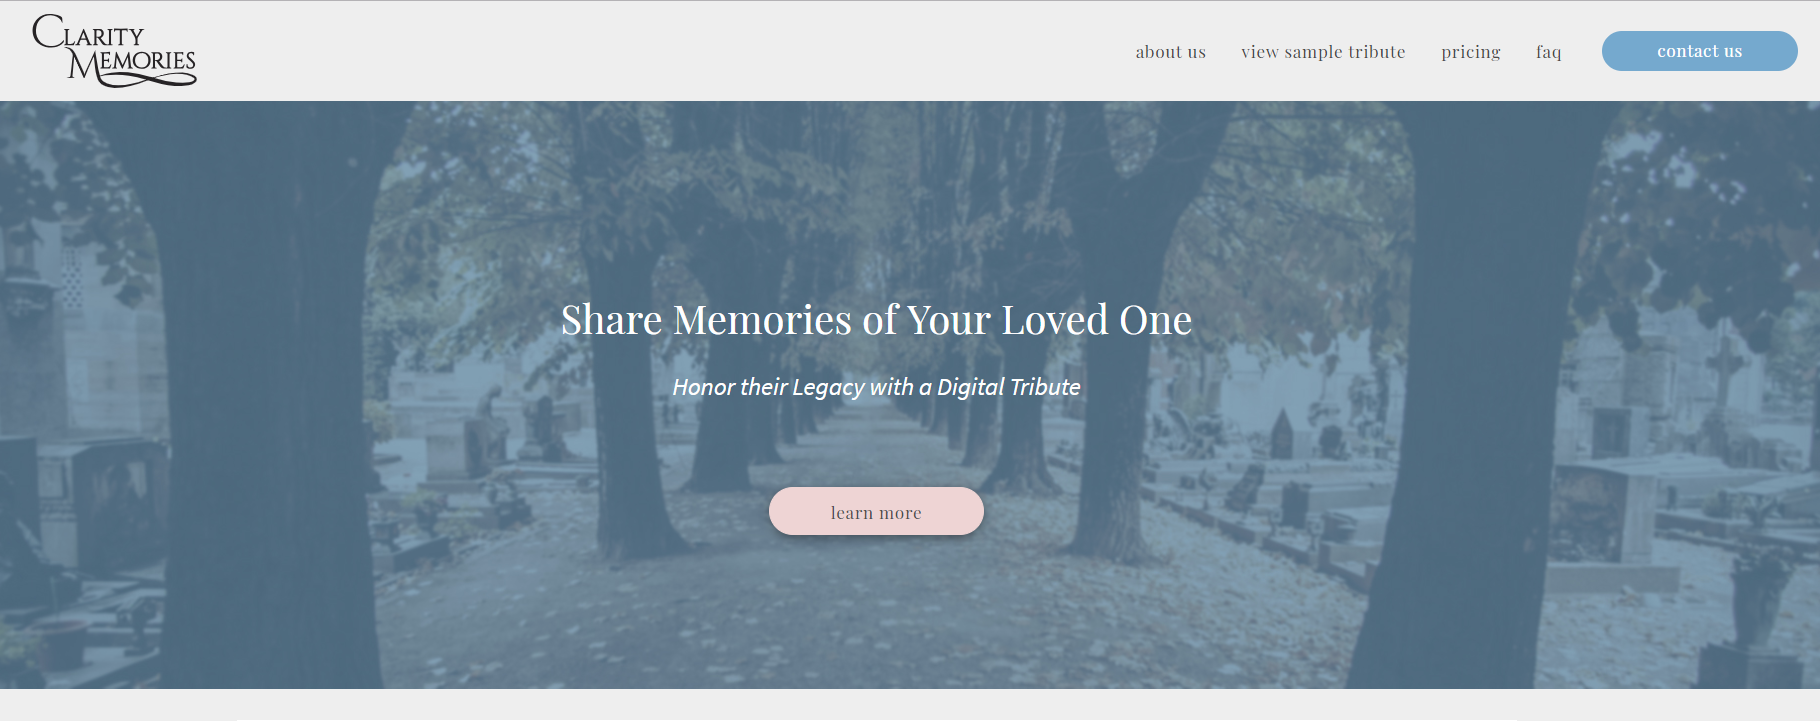 Homepage view of Clarity Memories website